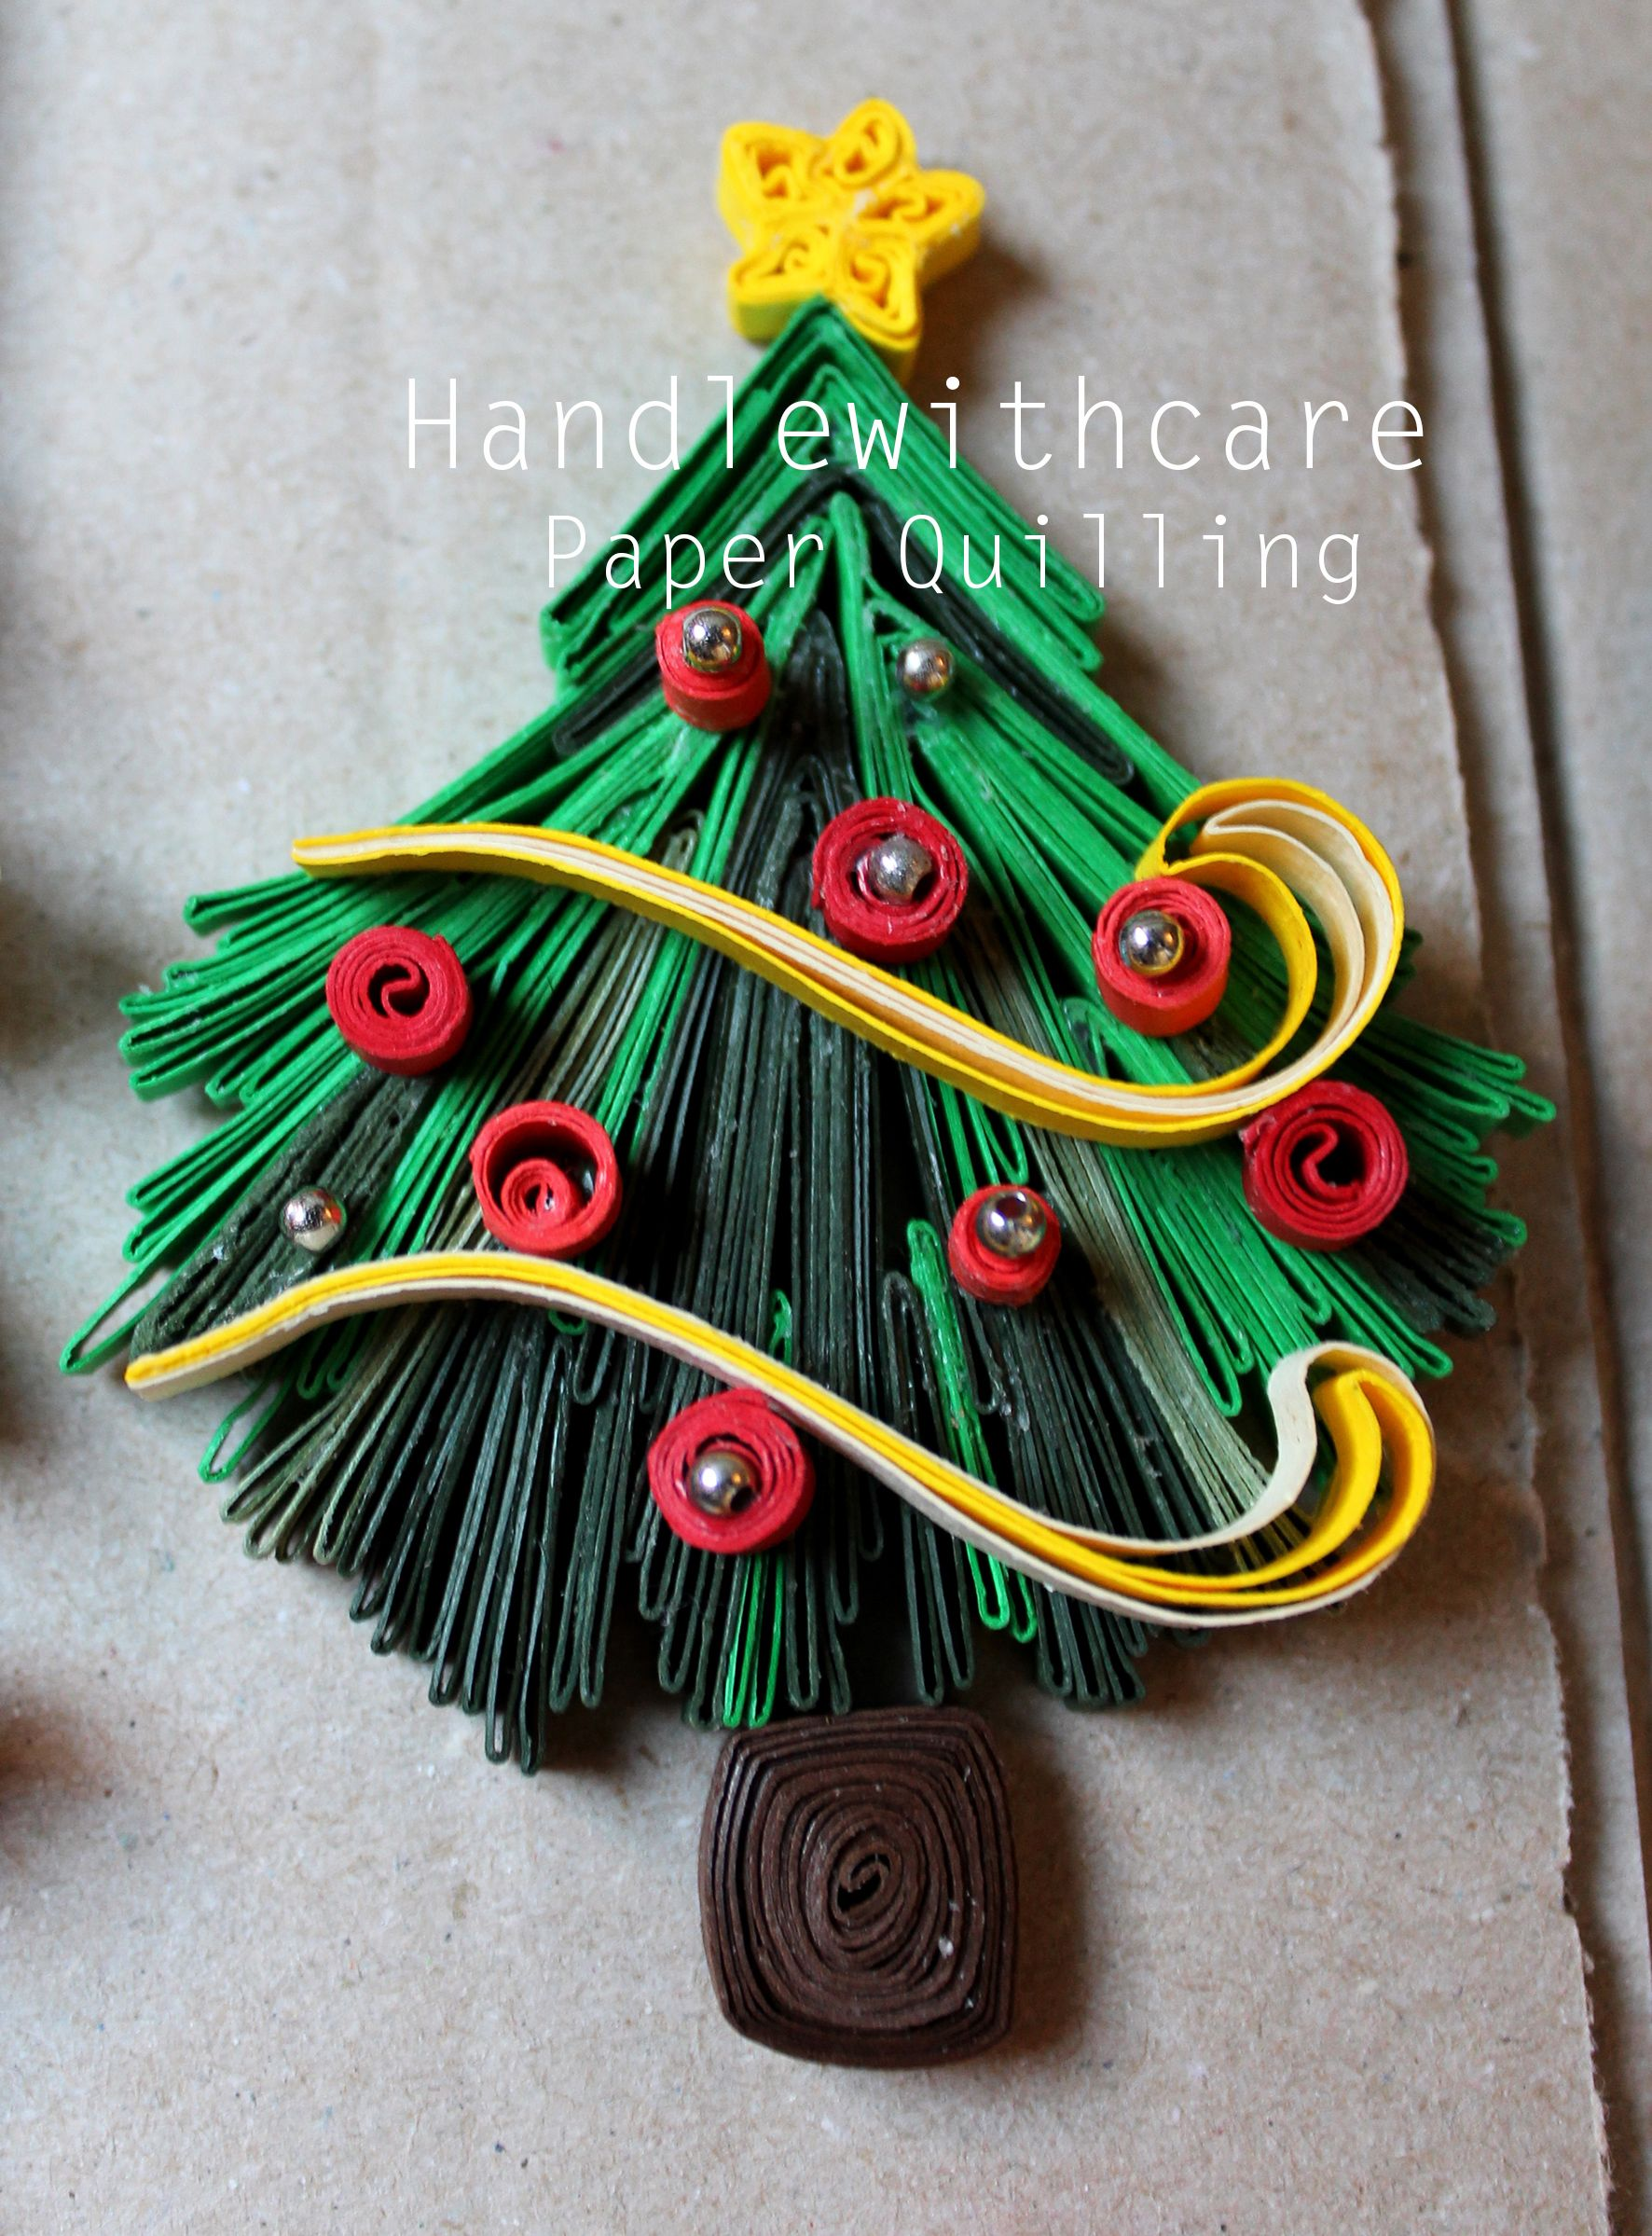 Decorazioni Natale Quilling.Quilling Christmas Decorazioni Natalizie Gorgeous Quill Quilling